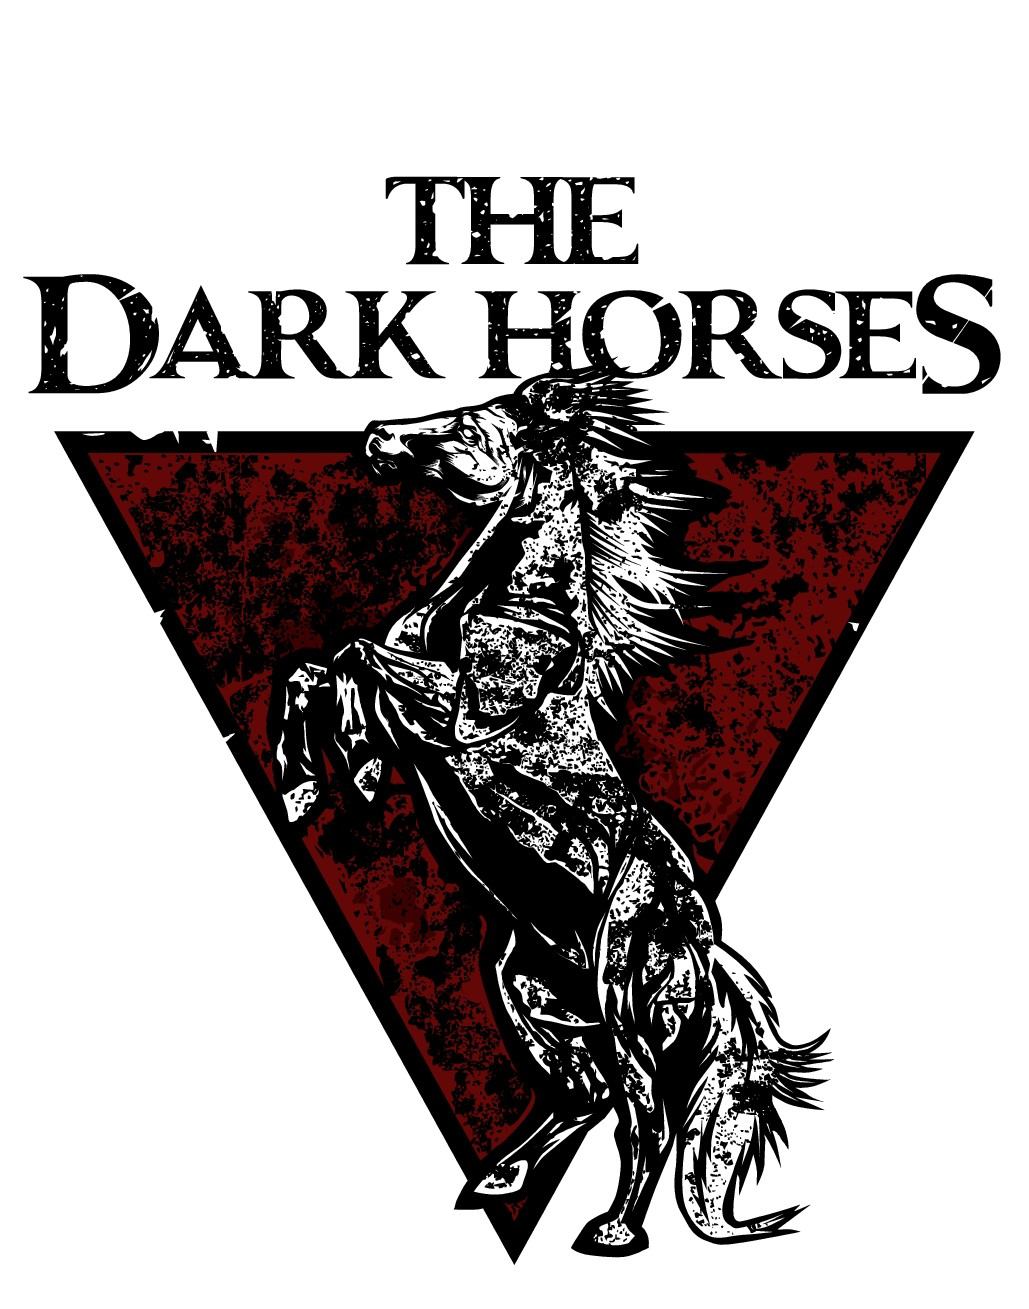 T-shirt for rock band The Dark Horses